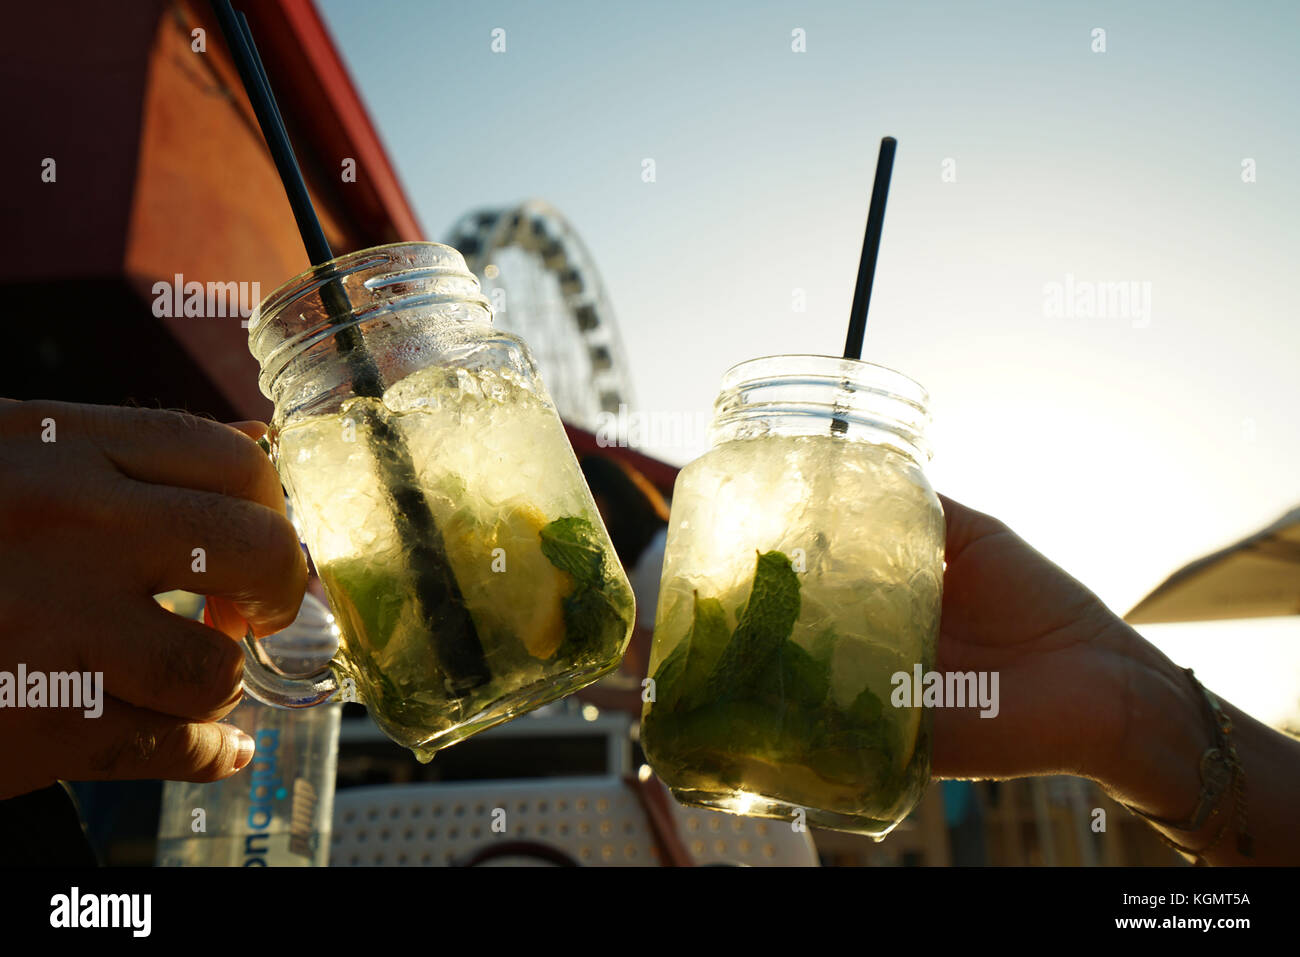 Closeup of people cheering with mojito drinks - Stock Image